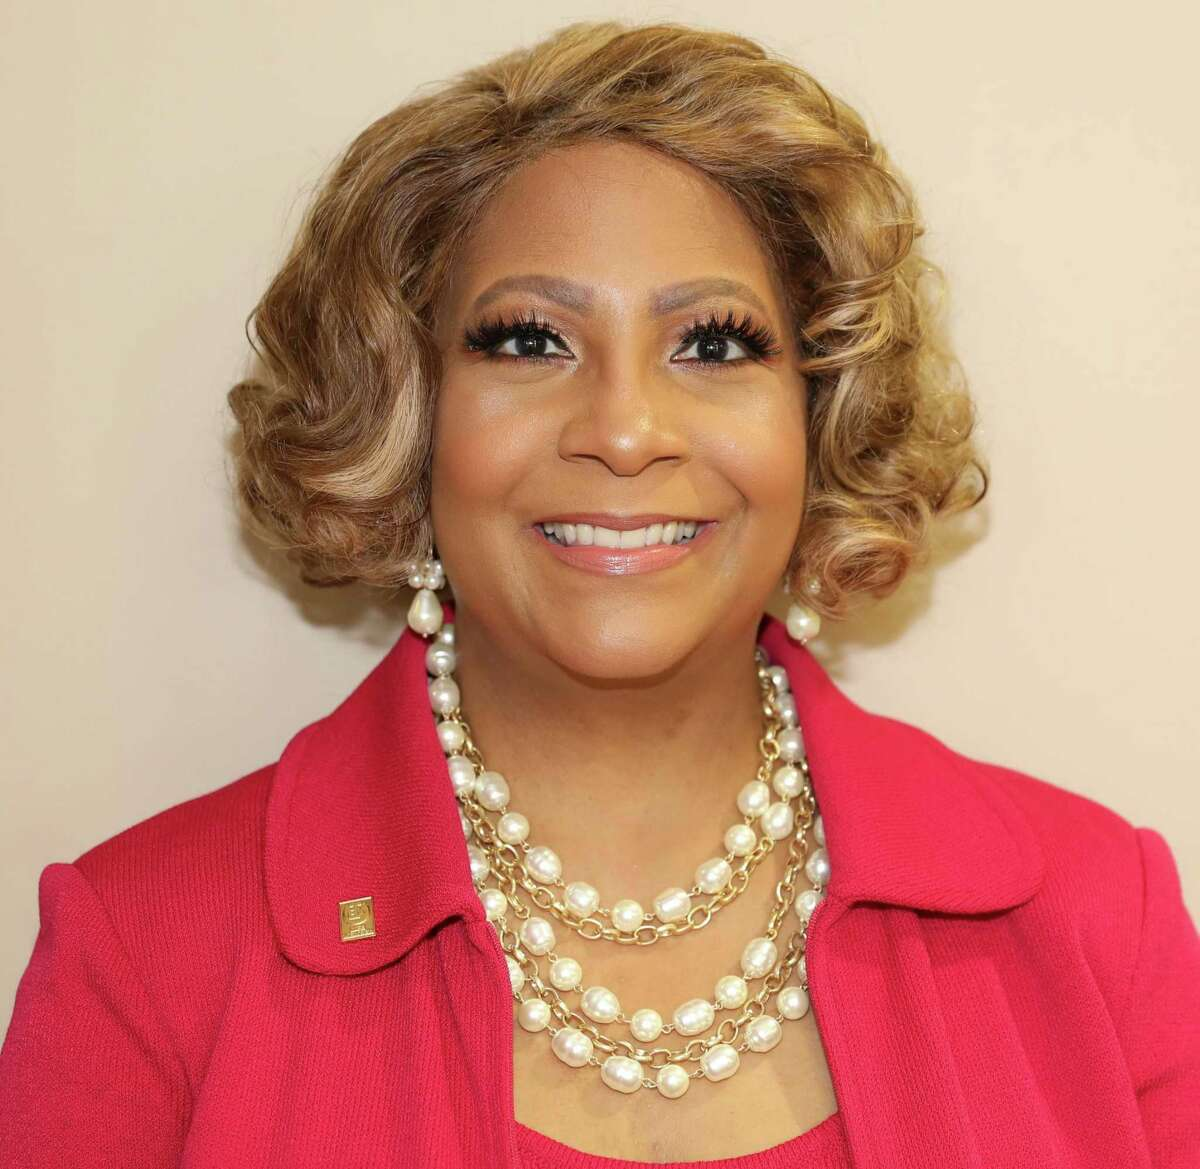 FamilyTime Crisis and Counseling Center announced its new leader on June 17 voted on by the board of directors.Christina J. Allen, now Chief Executive Officer of FamilyTime Crisis and Counseling Center, has worked in the field of sexual assault prevention and education for over 20 years.